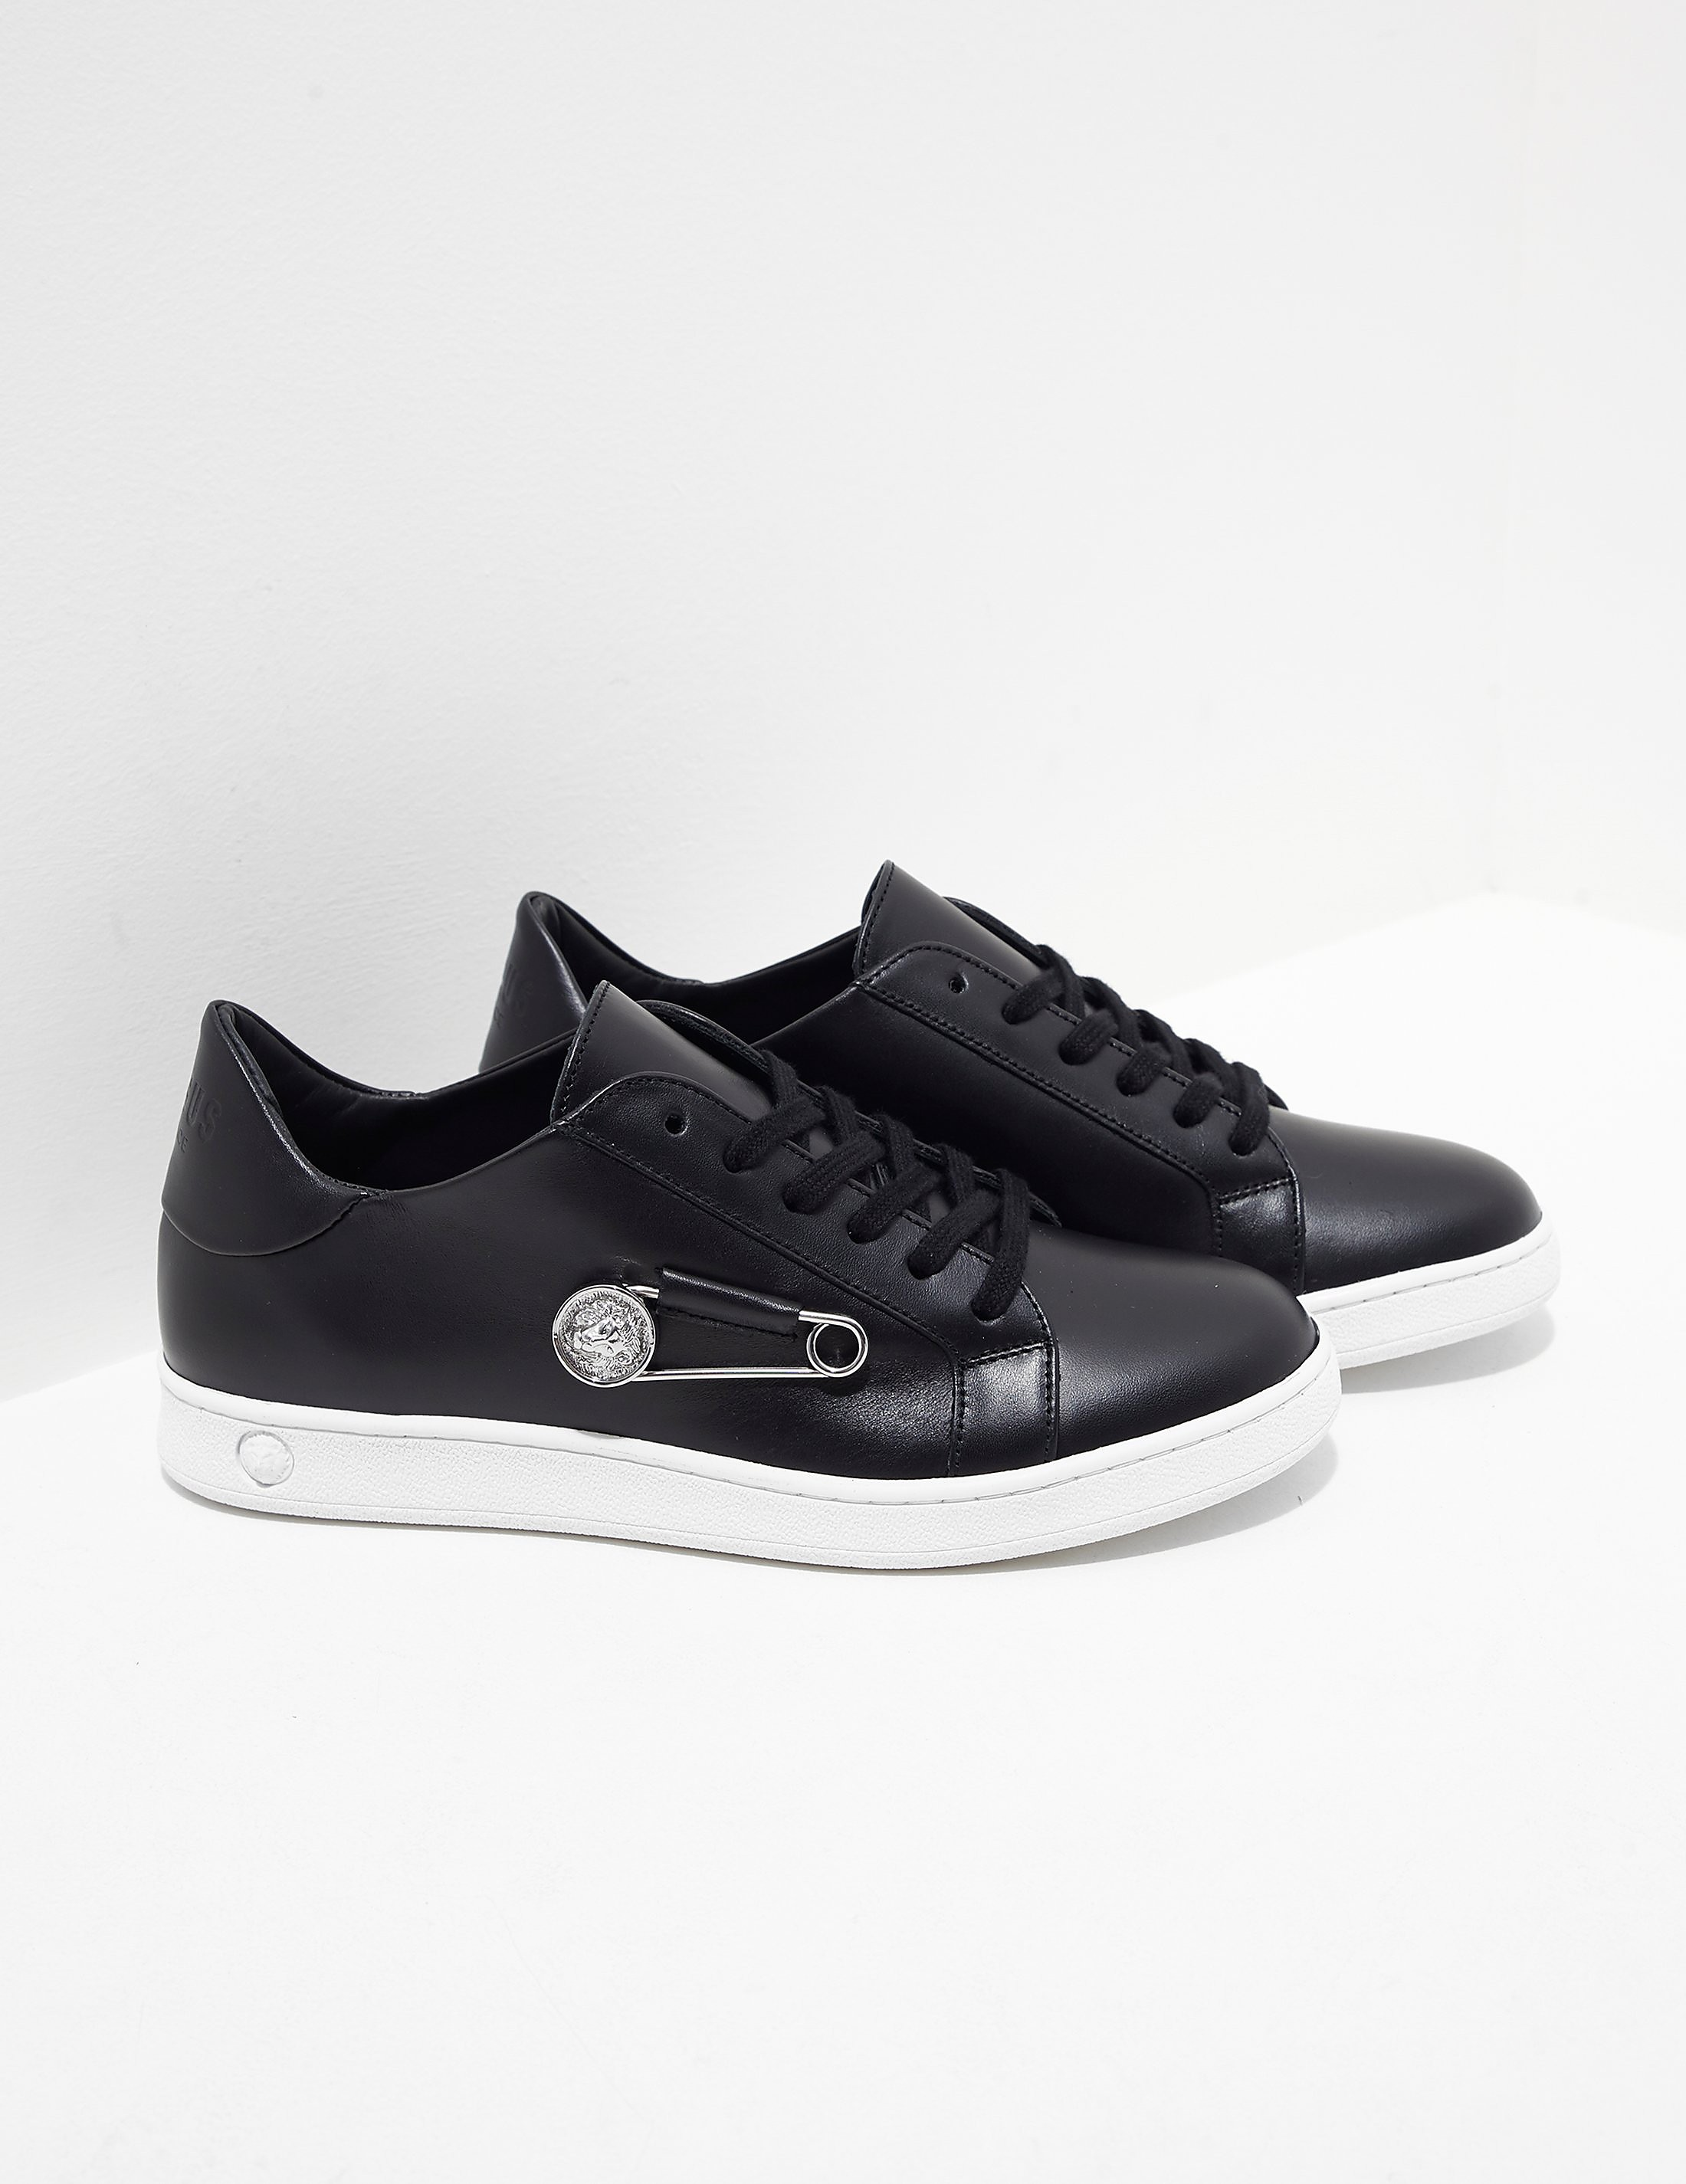 Versus Versace Lion Pin Trainer